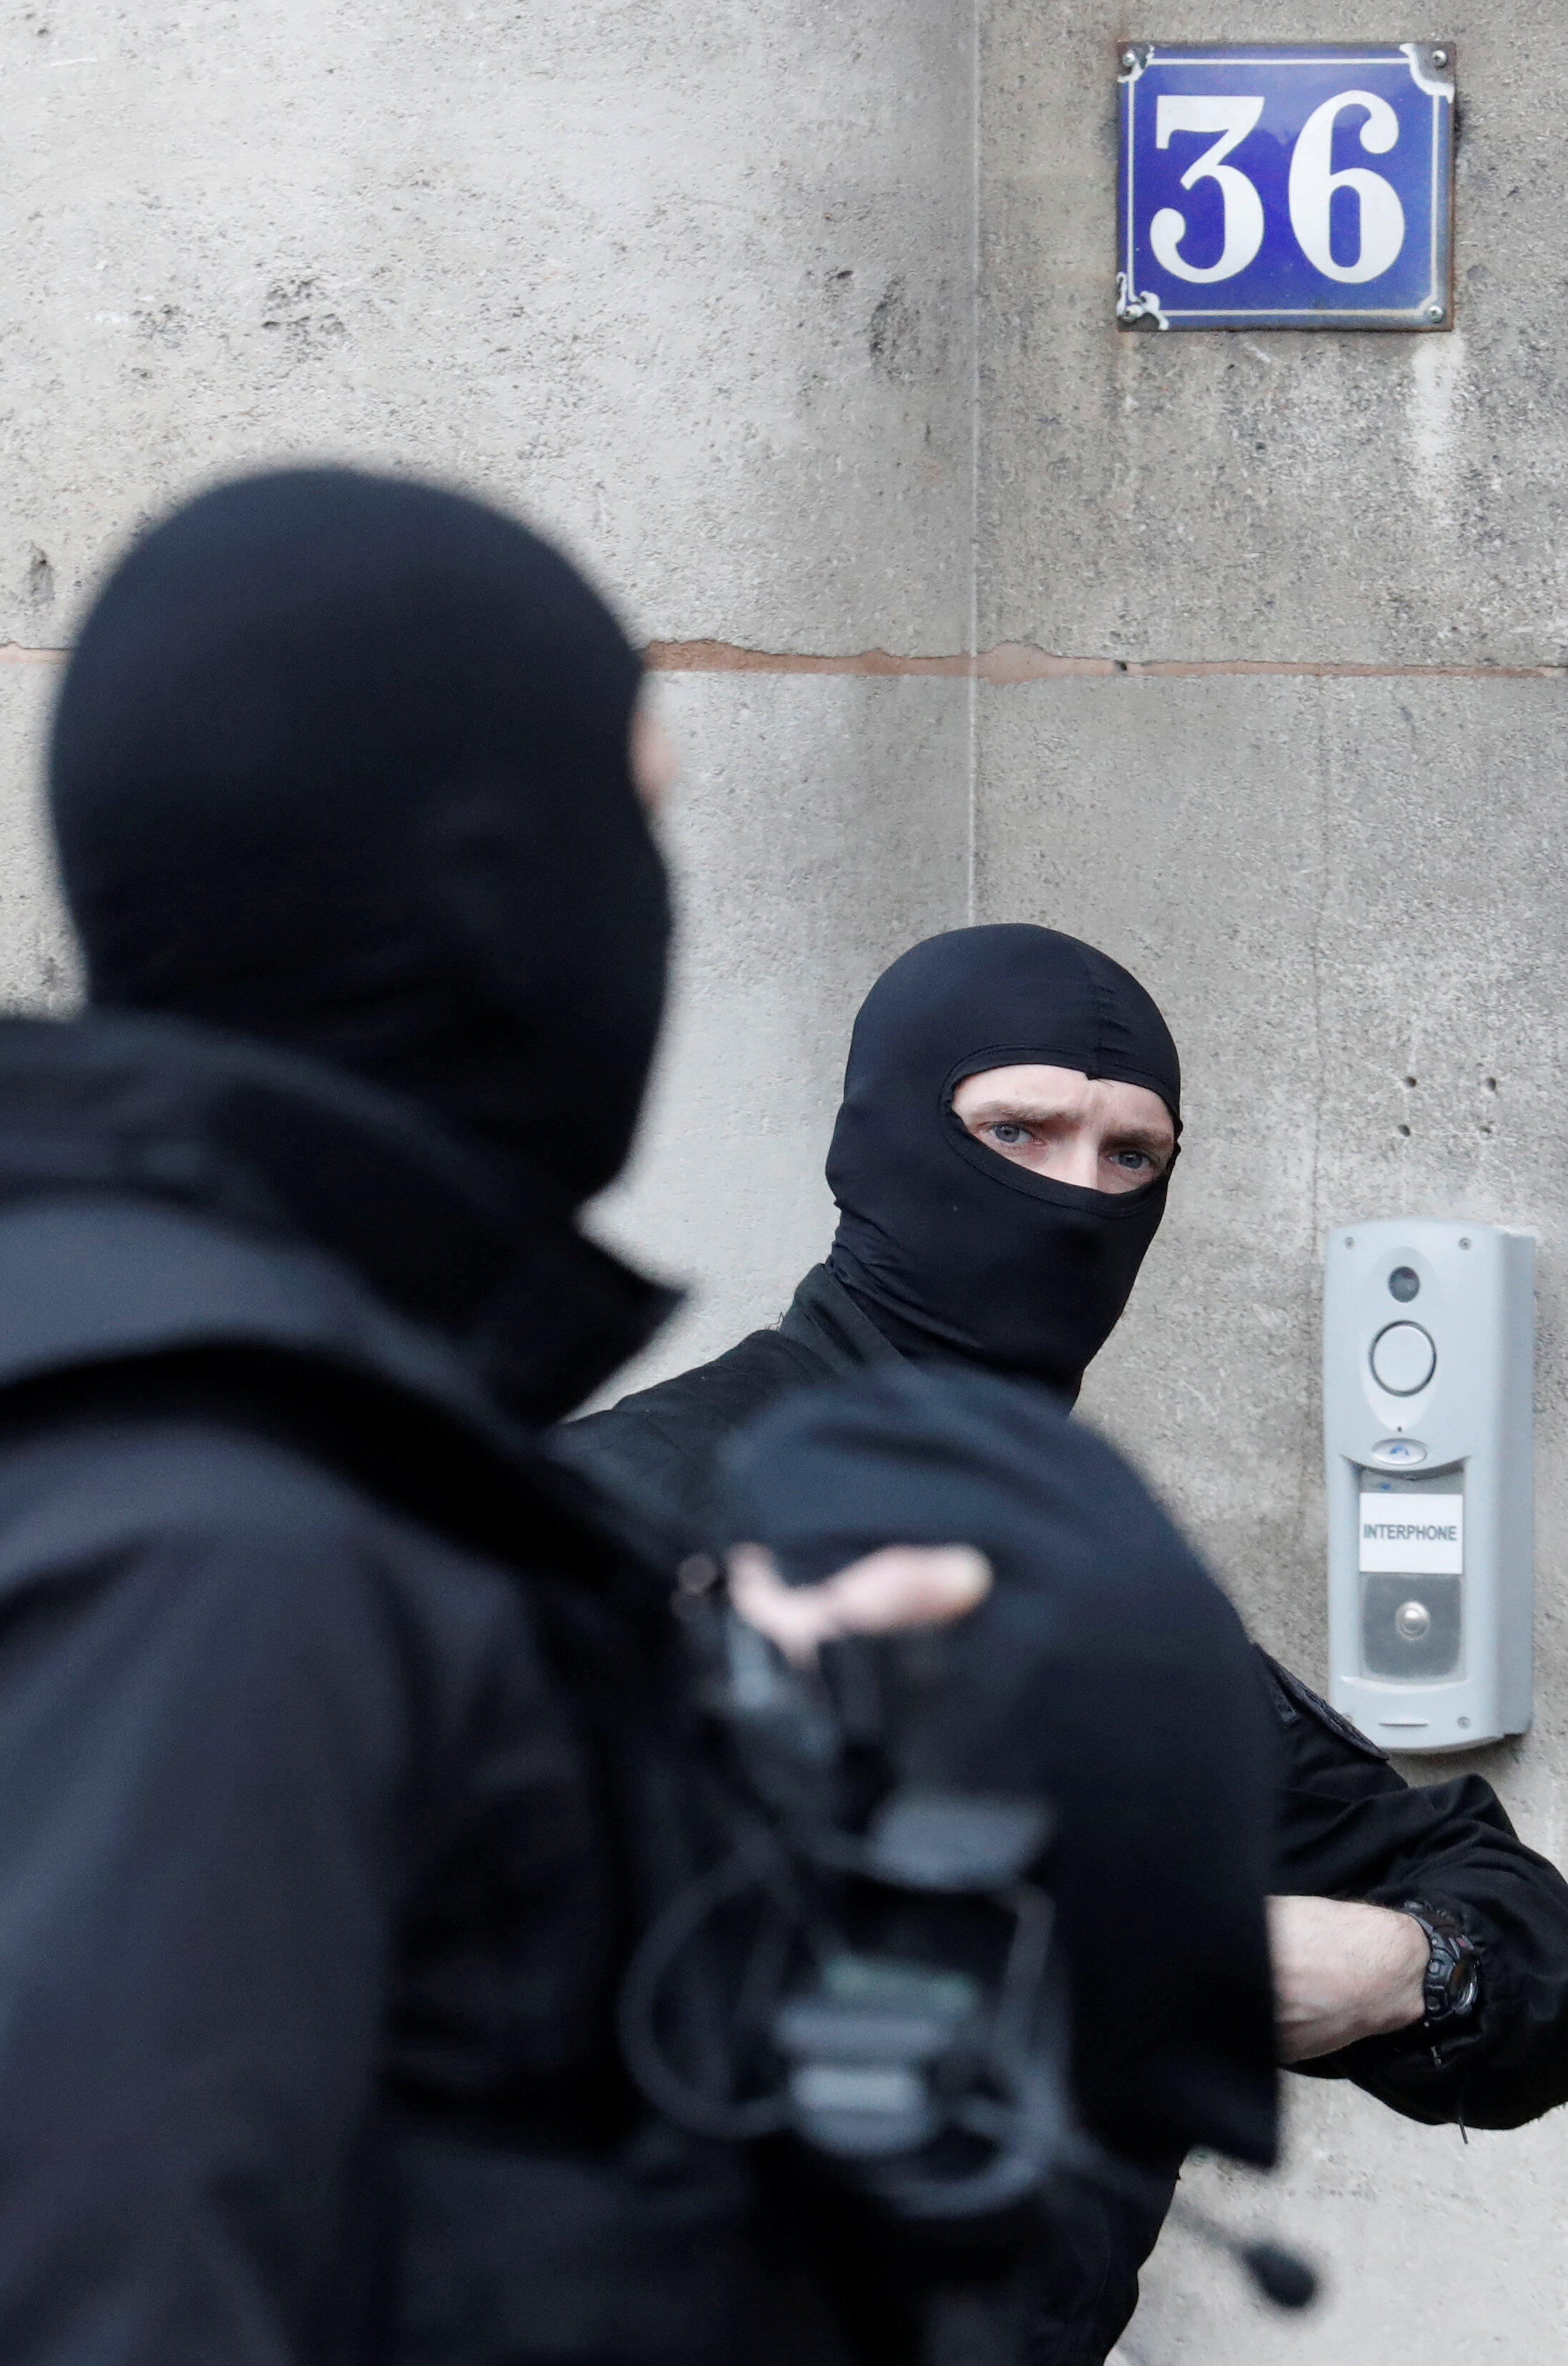 Members of the French special police force (BRI) in Paris on Monday